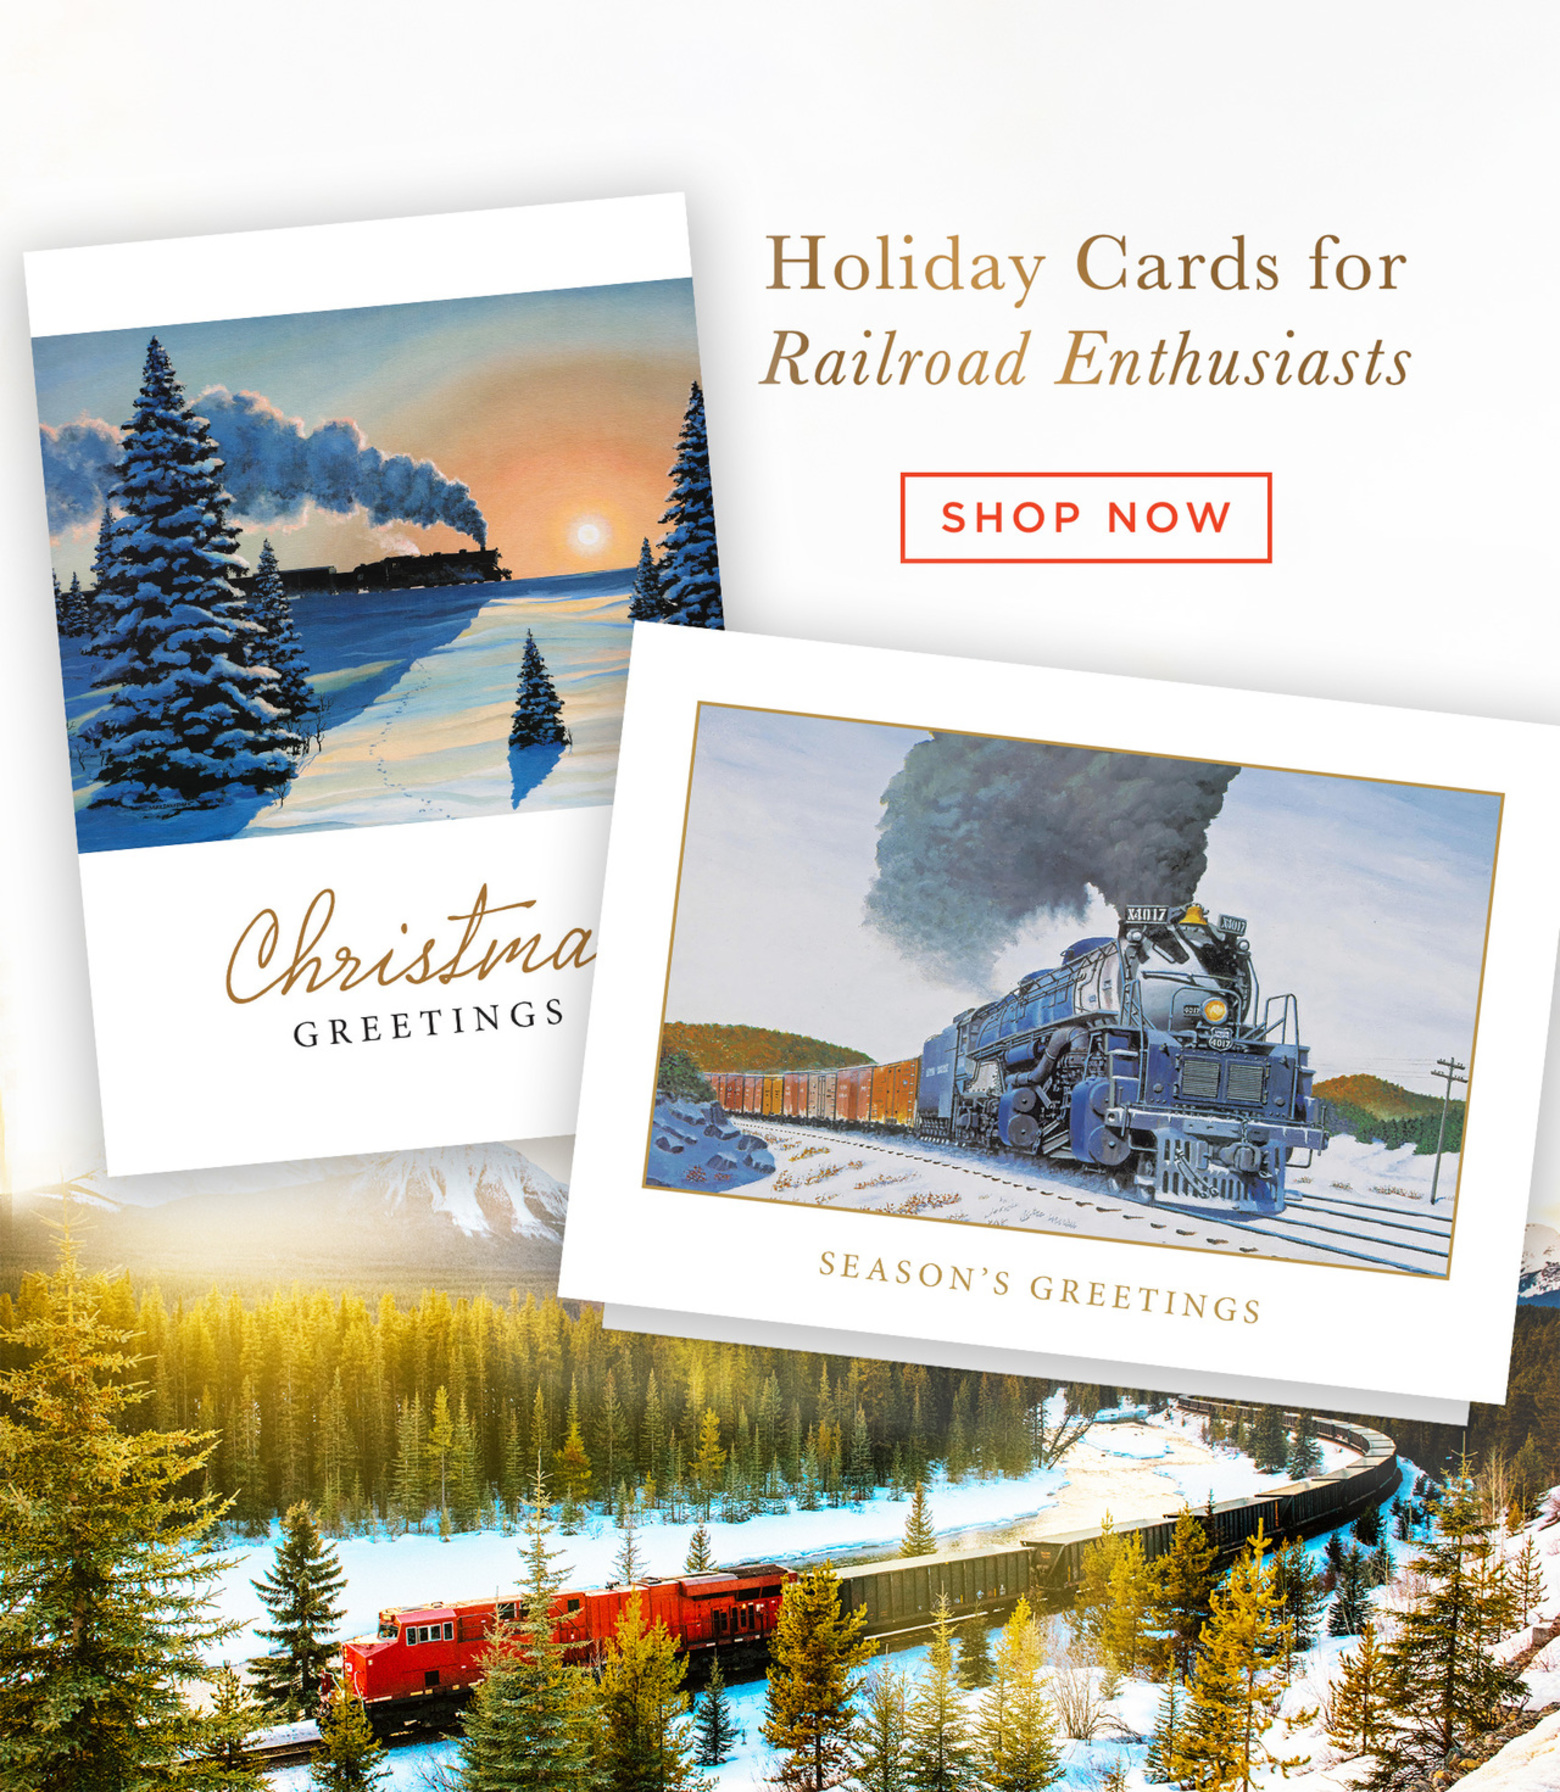 Holiday Cards fro Railroad Enthusiasts